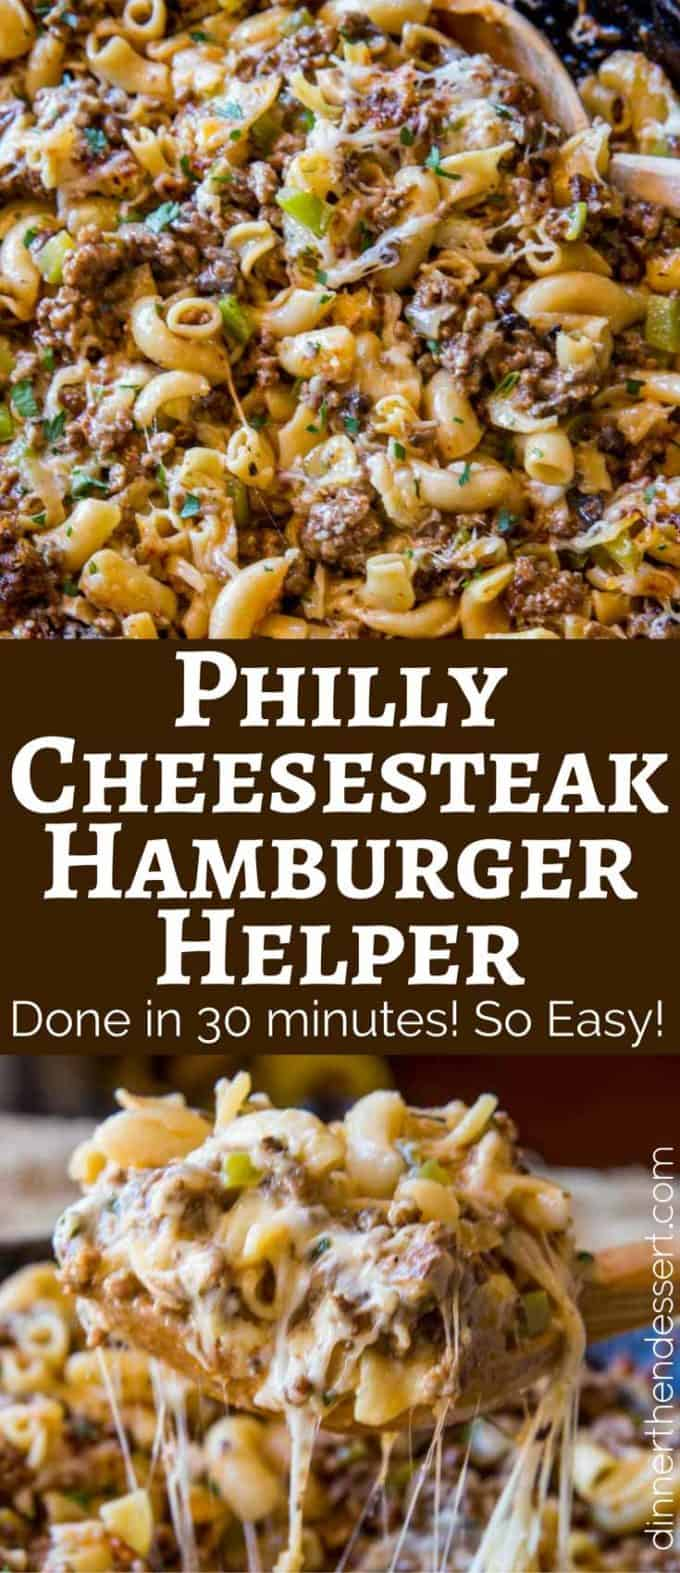 Philly Cheesesteak Hamburger Helper will make you forget all about the boxed type you had as a kid, you'll love this creamy, cheesy cheesesteak pasta.